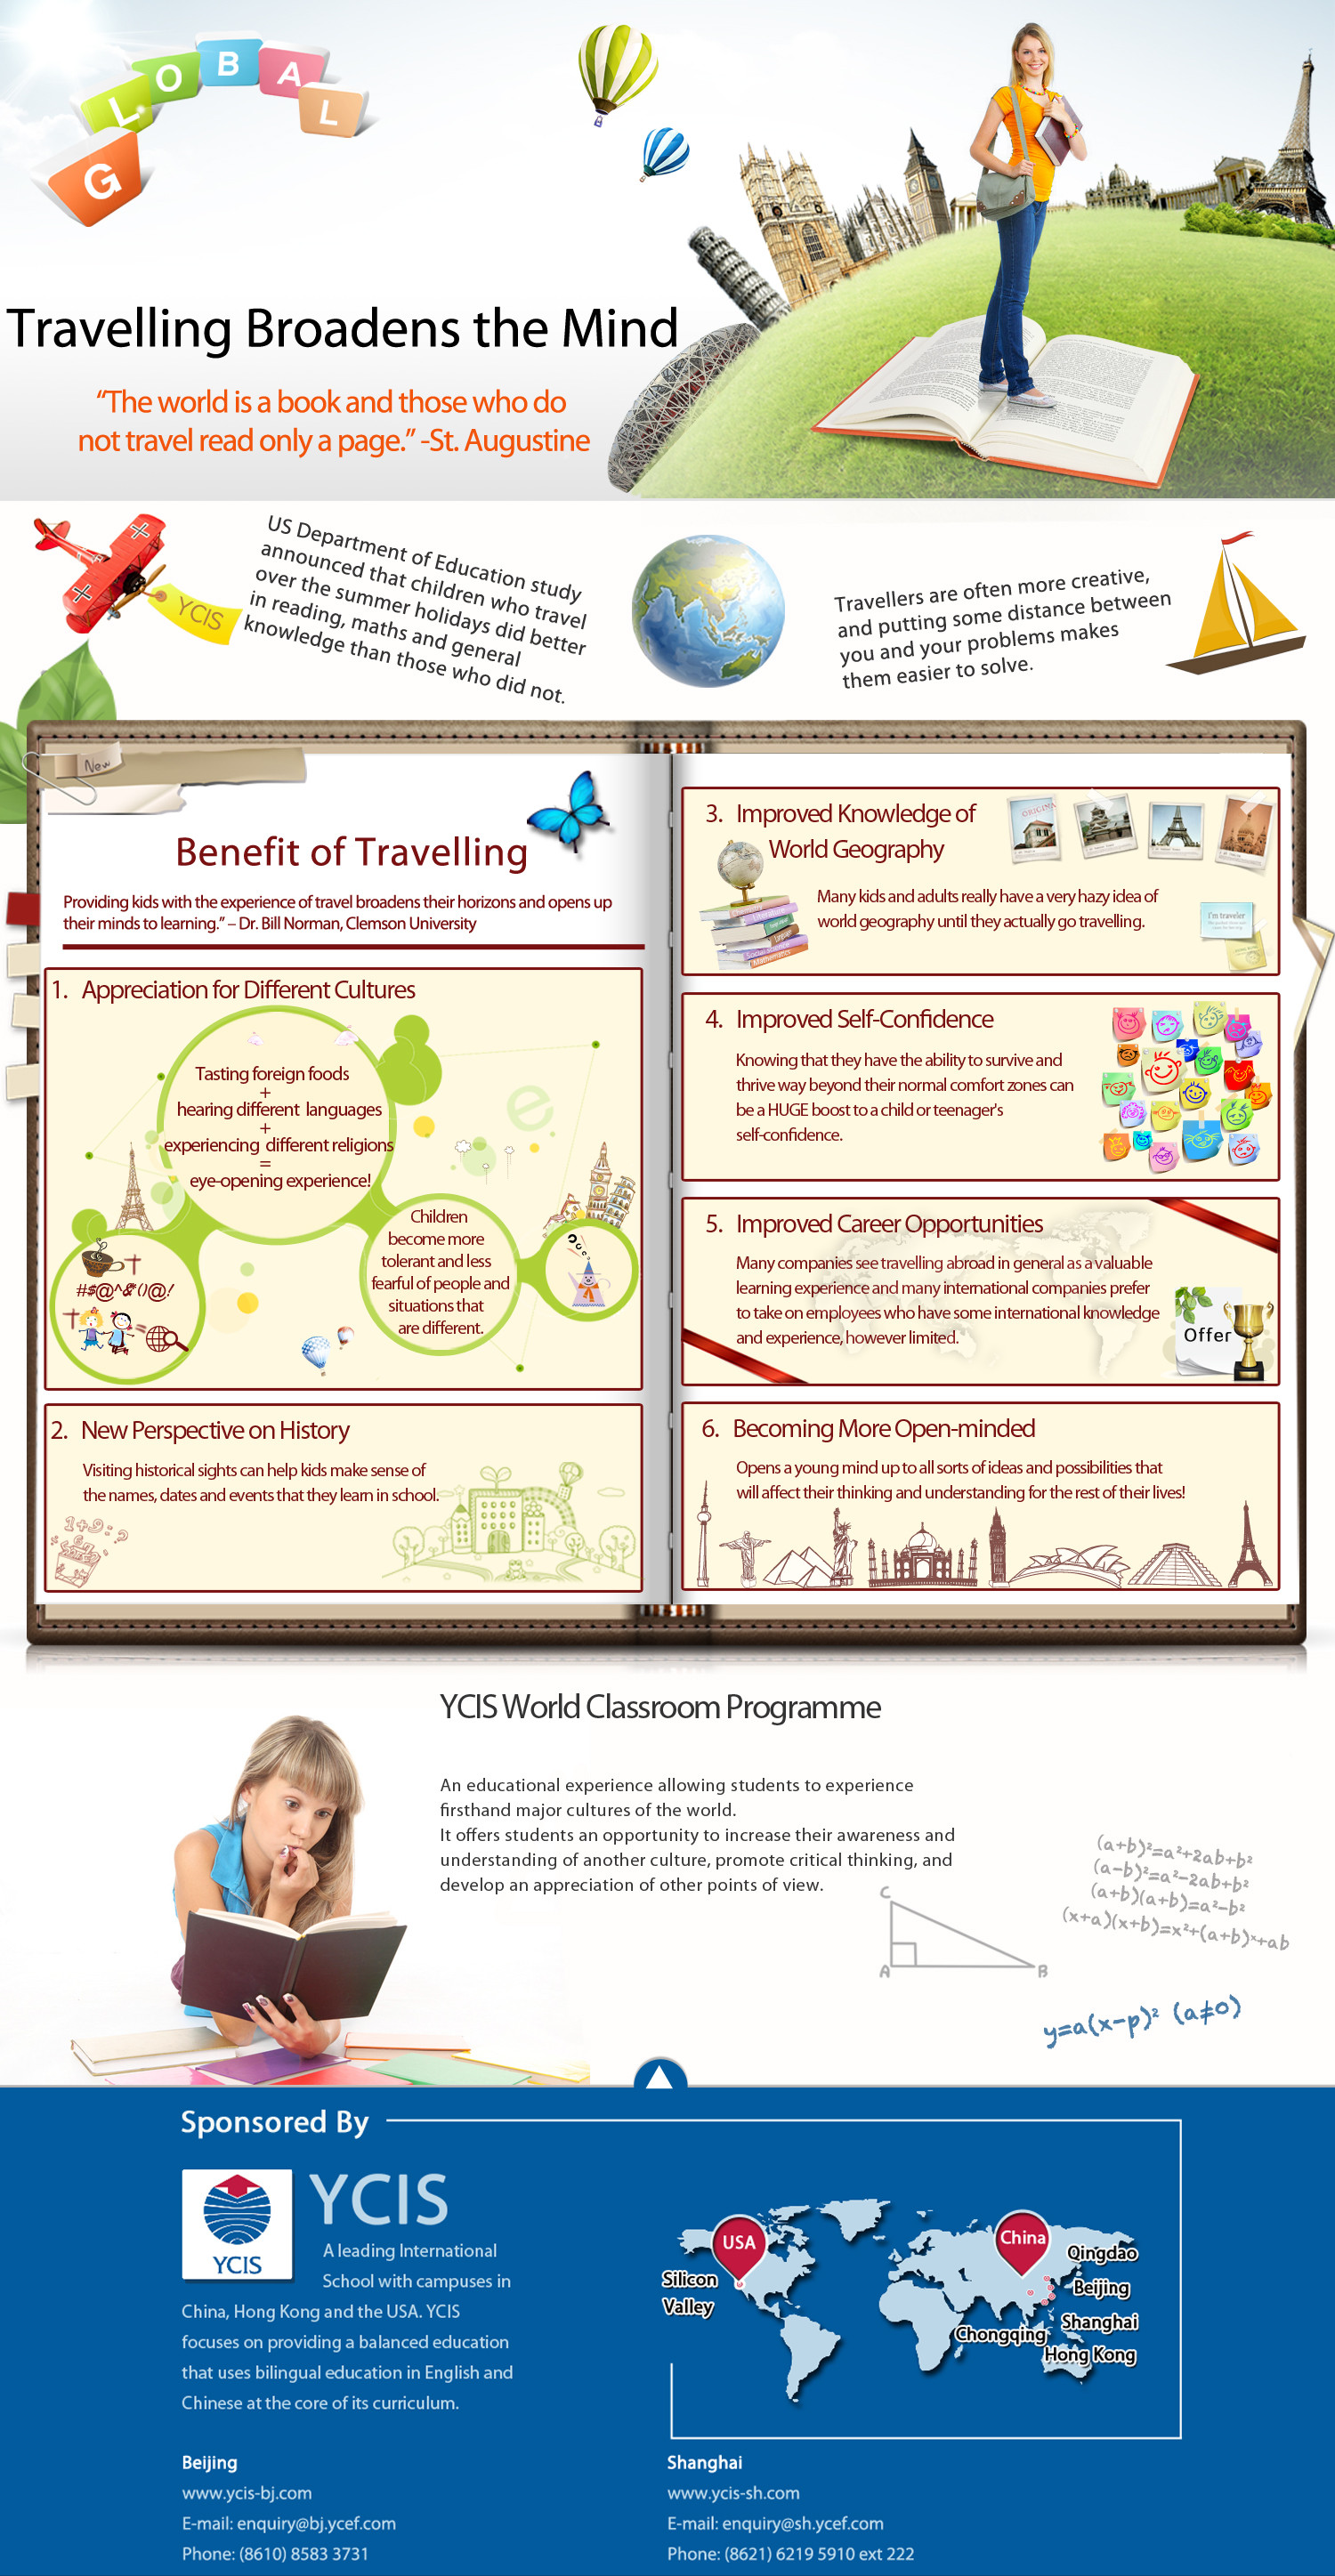 Travelling Broadens the Mind Infographic